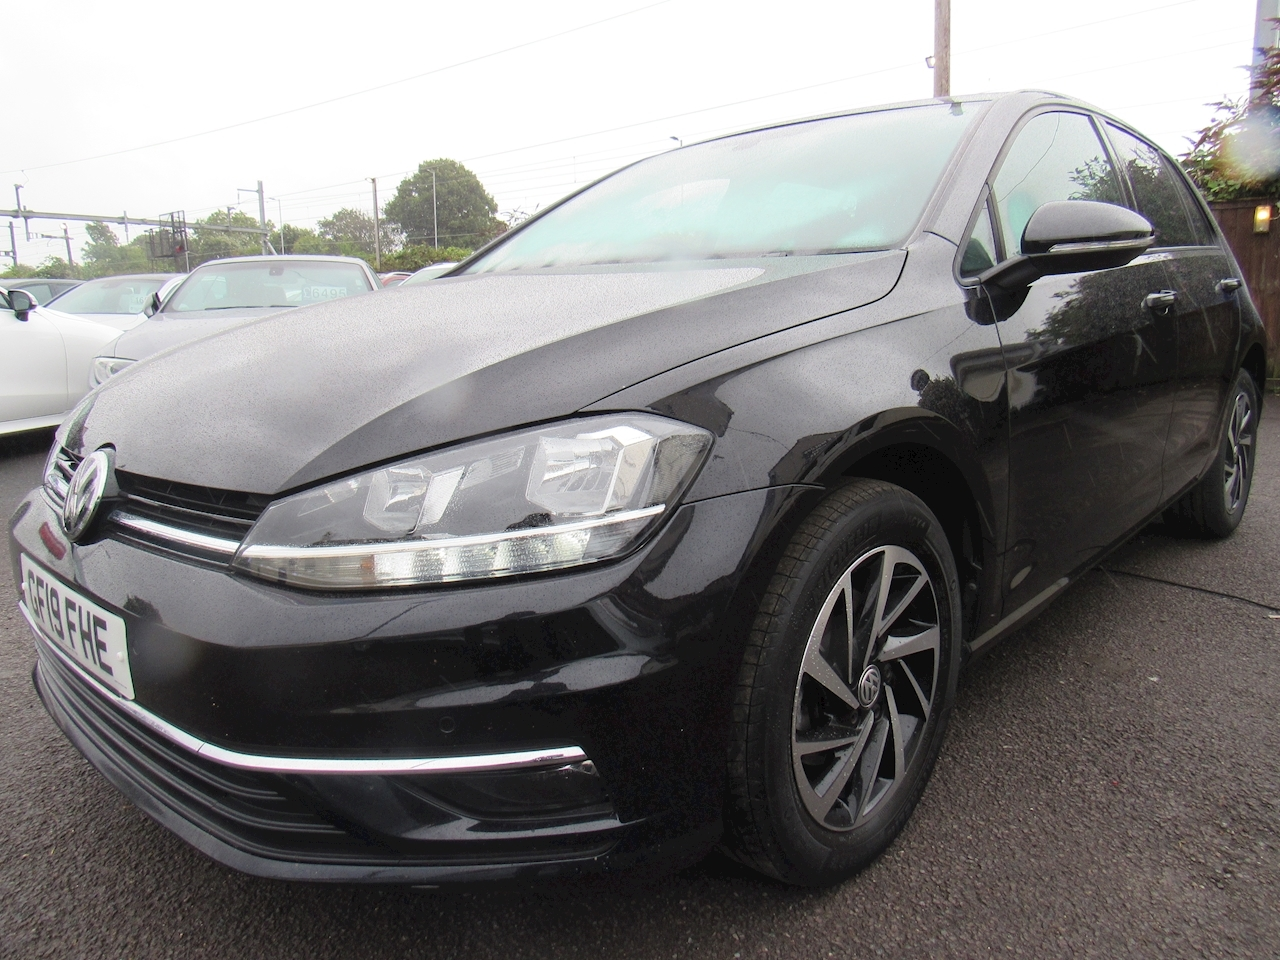 Volkswagen Golf Match Hatchback 1.6 DSG Diesel